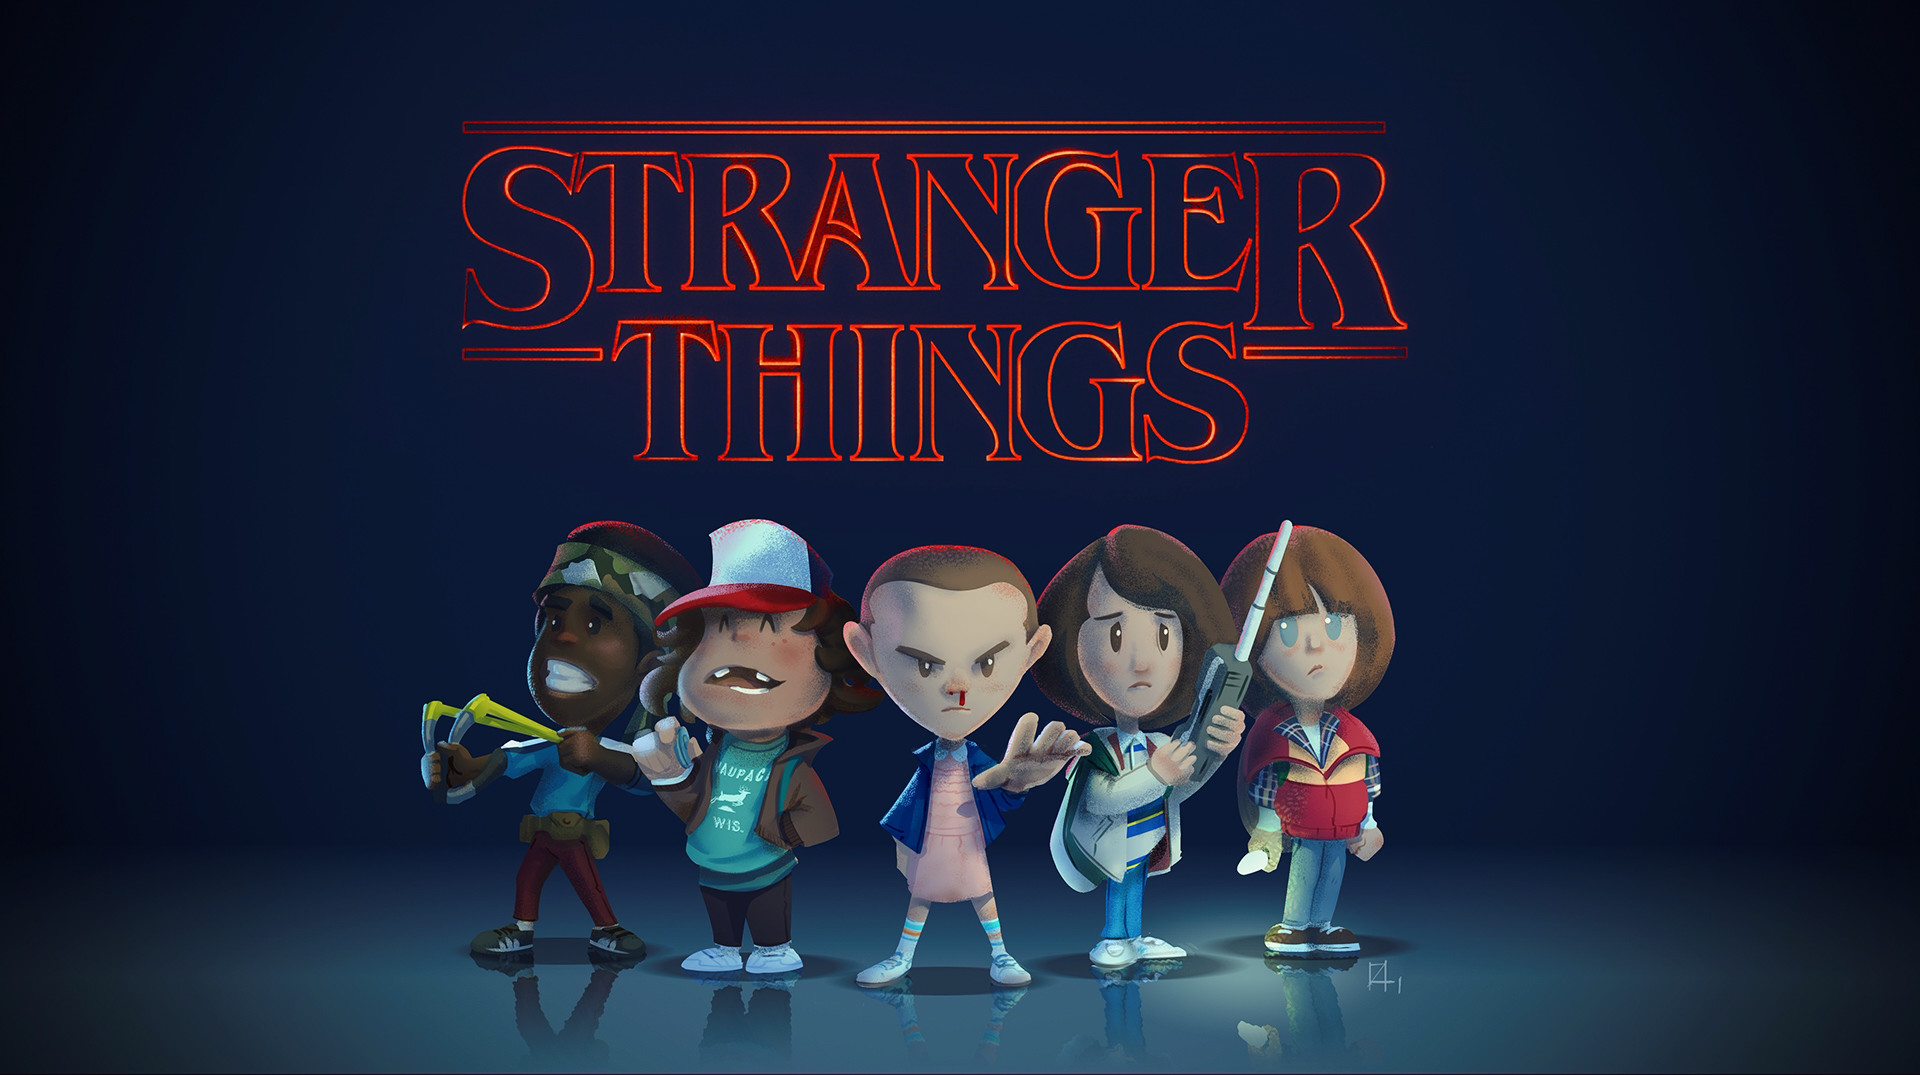 stranger things season 2 wallpaper